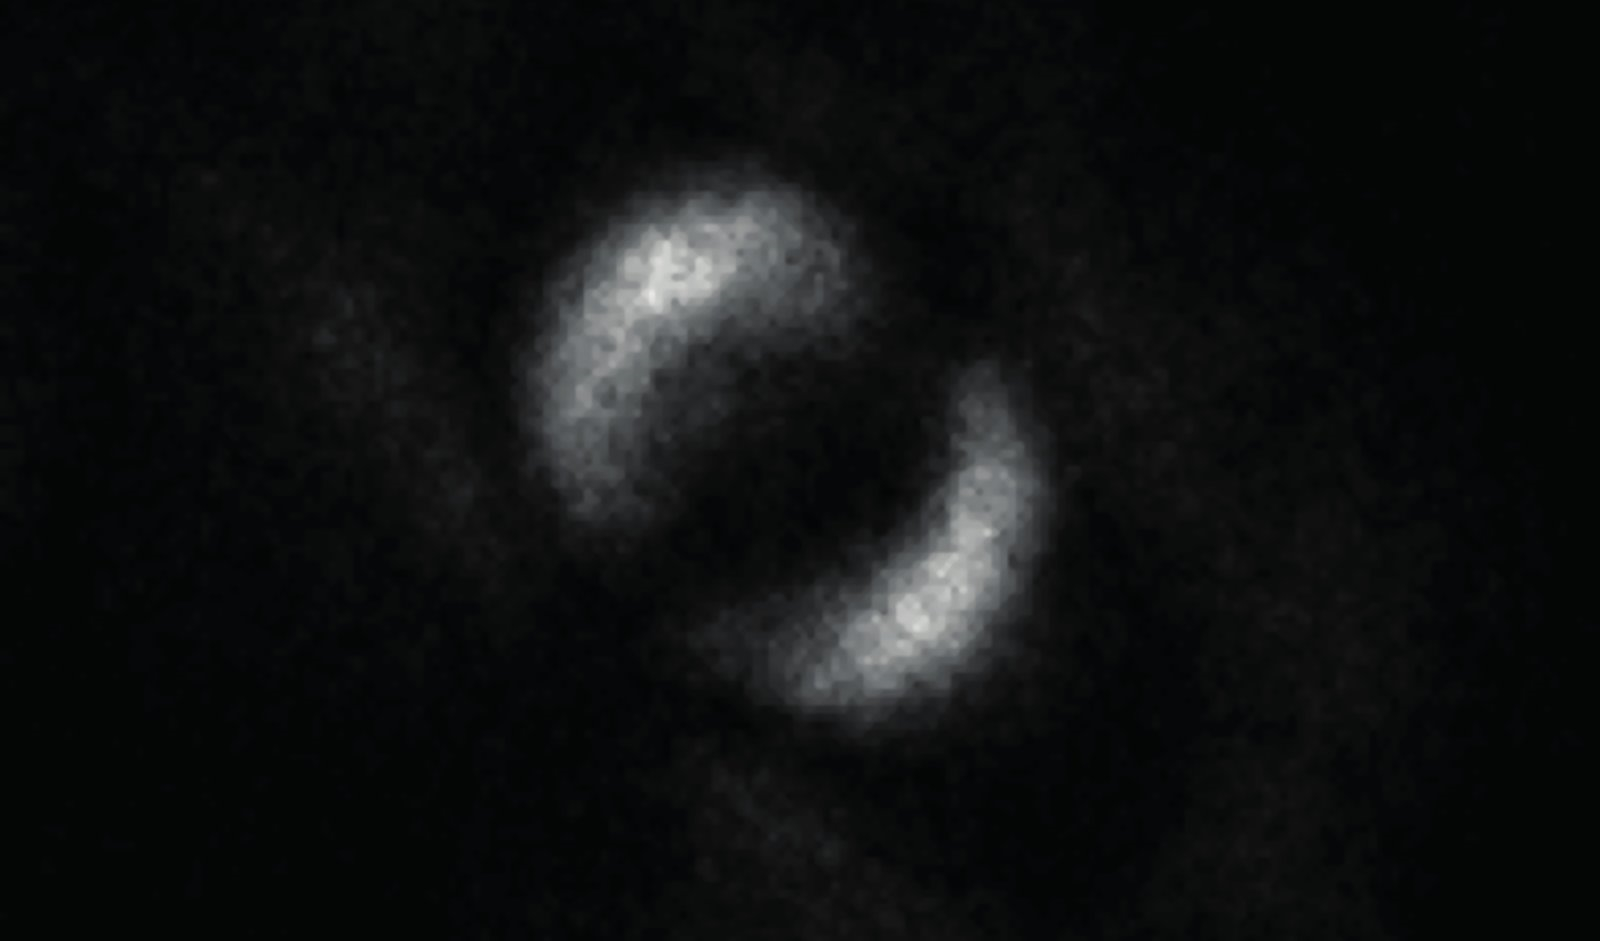 Scientists unveil image of quantum entanglement for the first time ever | DeviceDaily.com